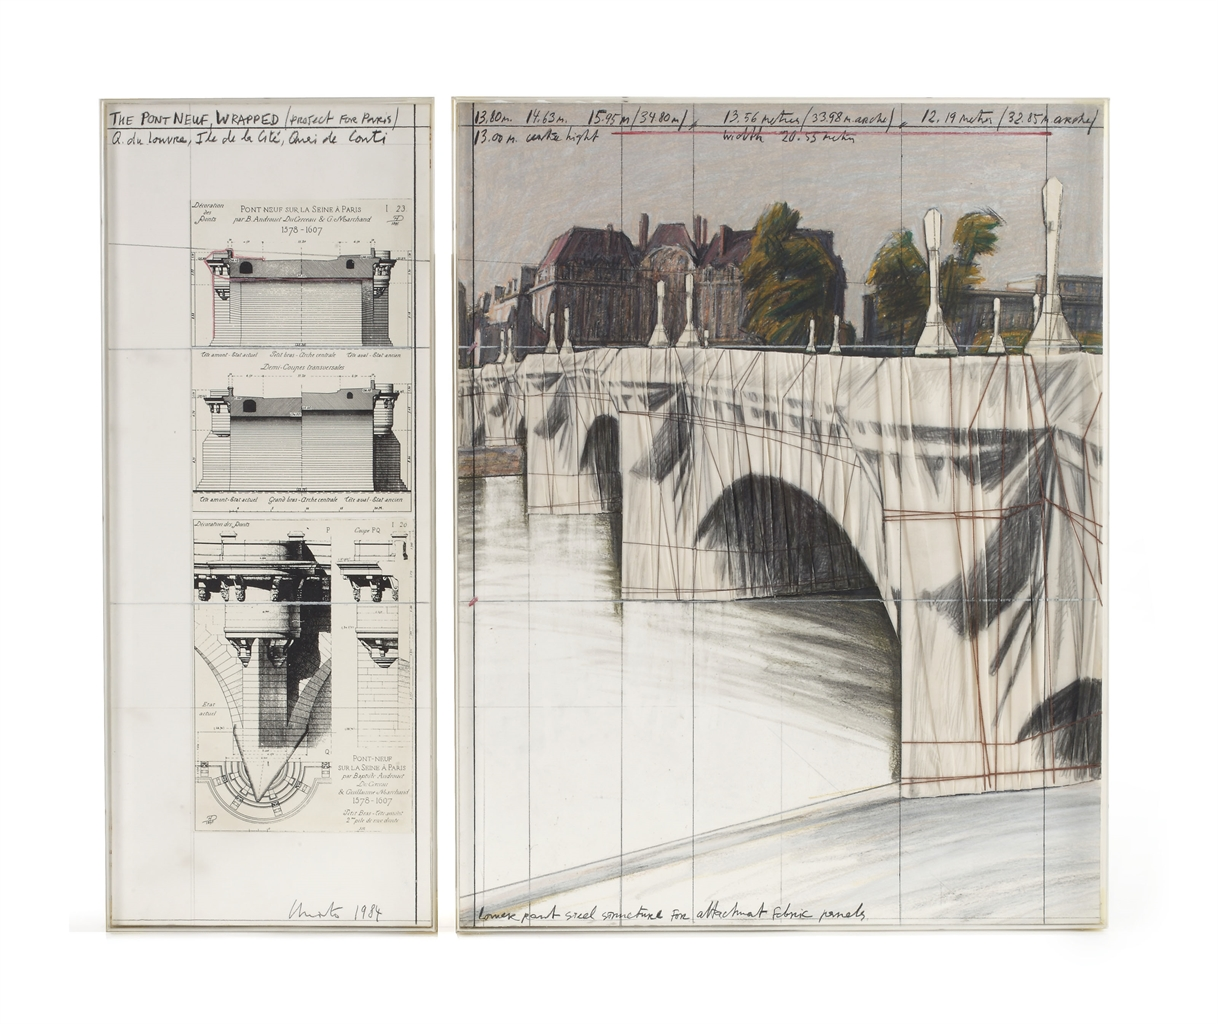 Christo and Jeanne-Claude-The Pont Neuf, Wrapped (Project For Paris)-1984